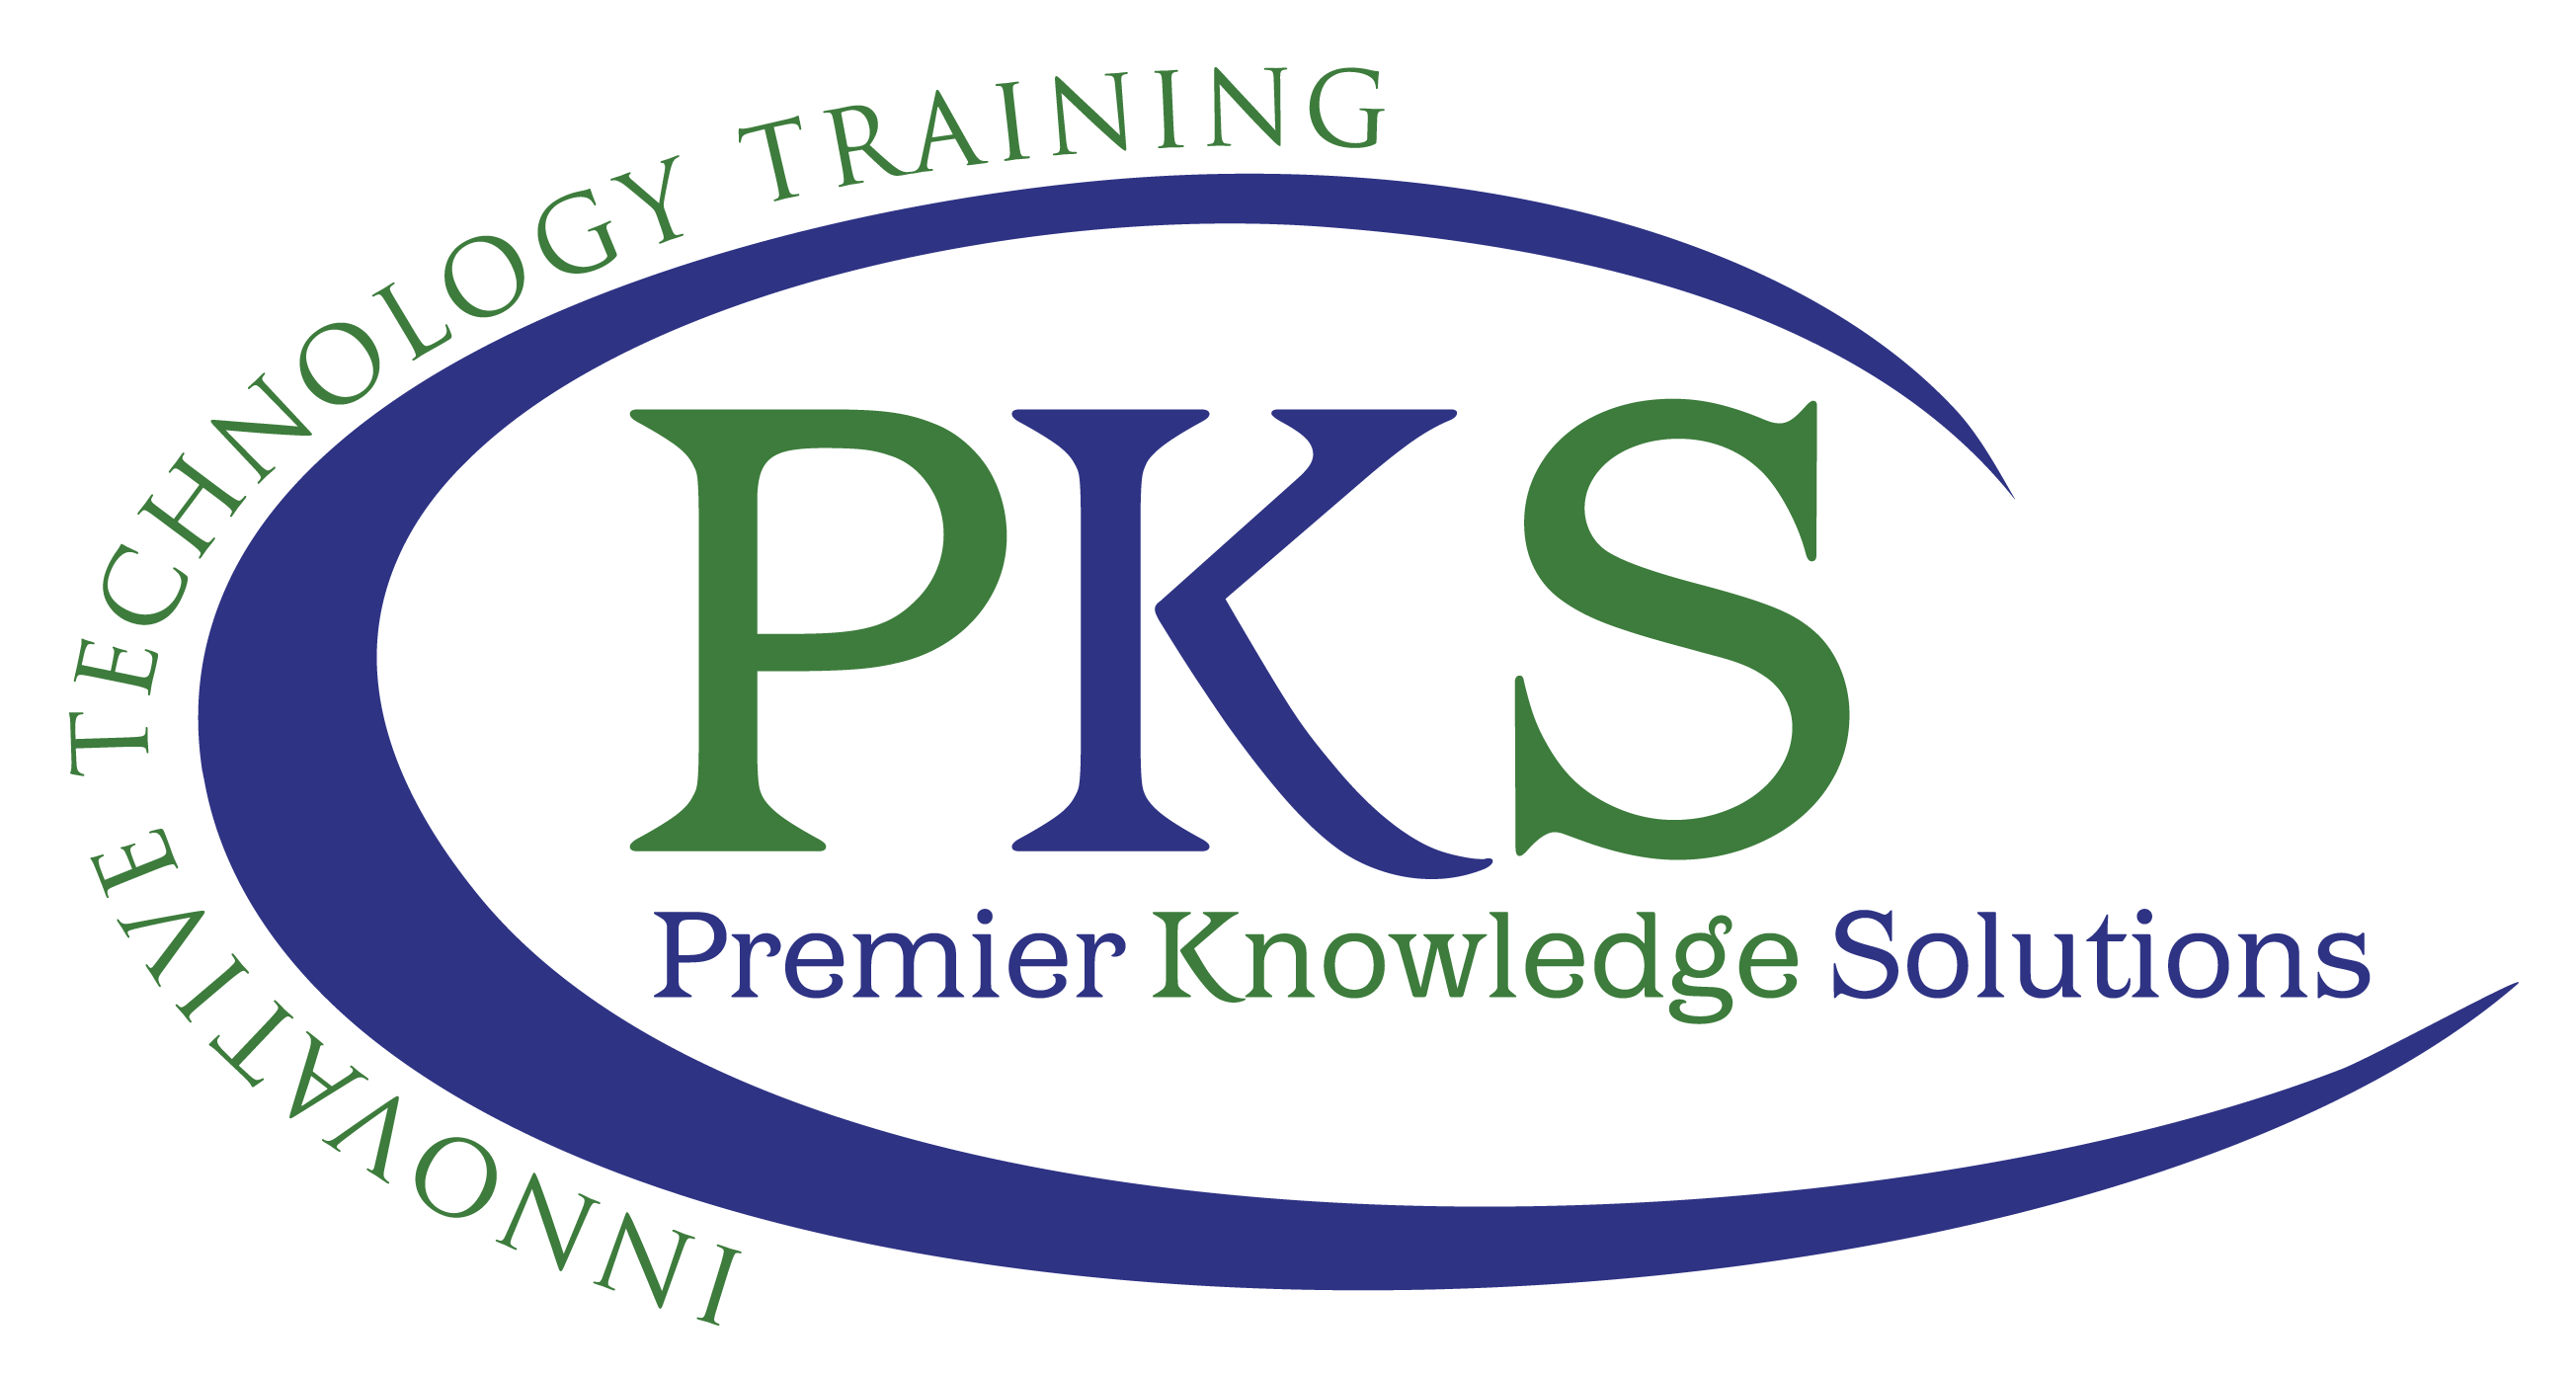 Premier Knowledge Solutions